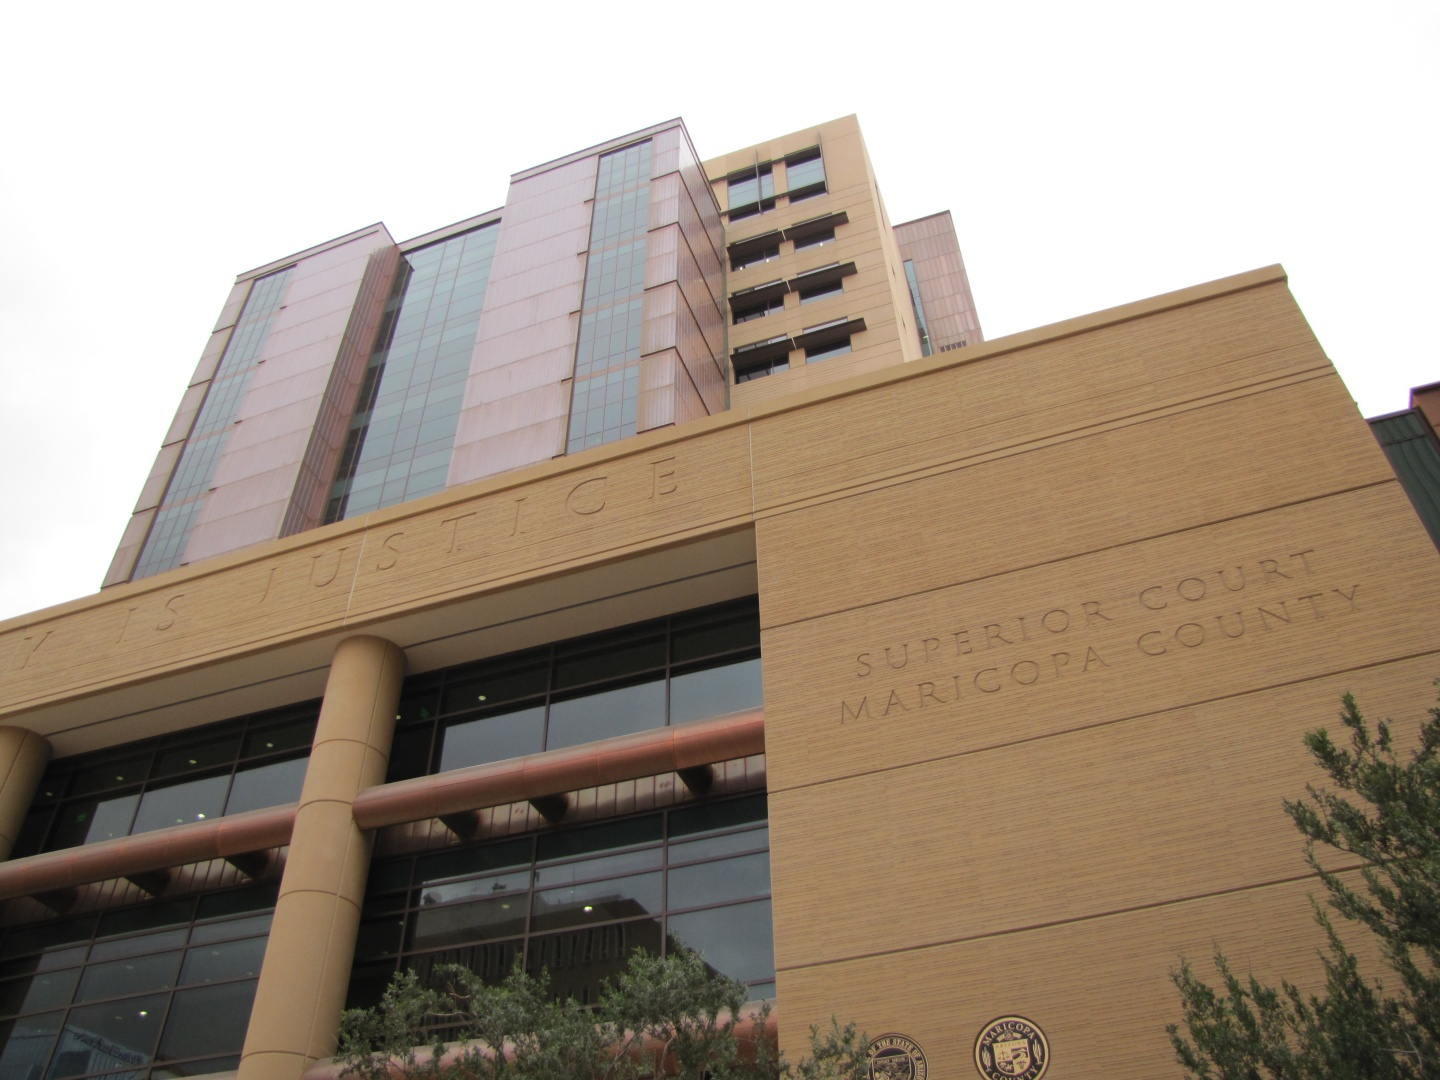 Maricopa County New Court Tower